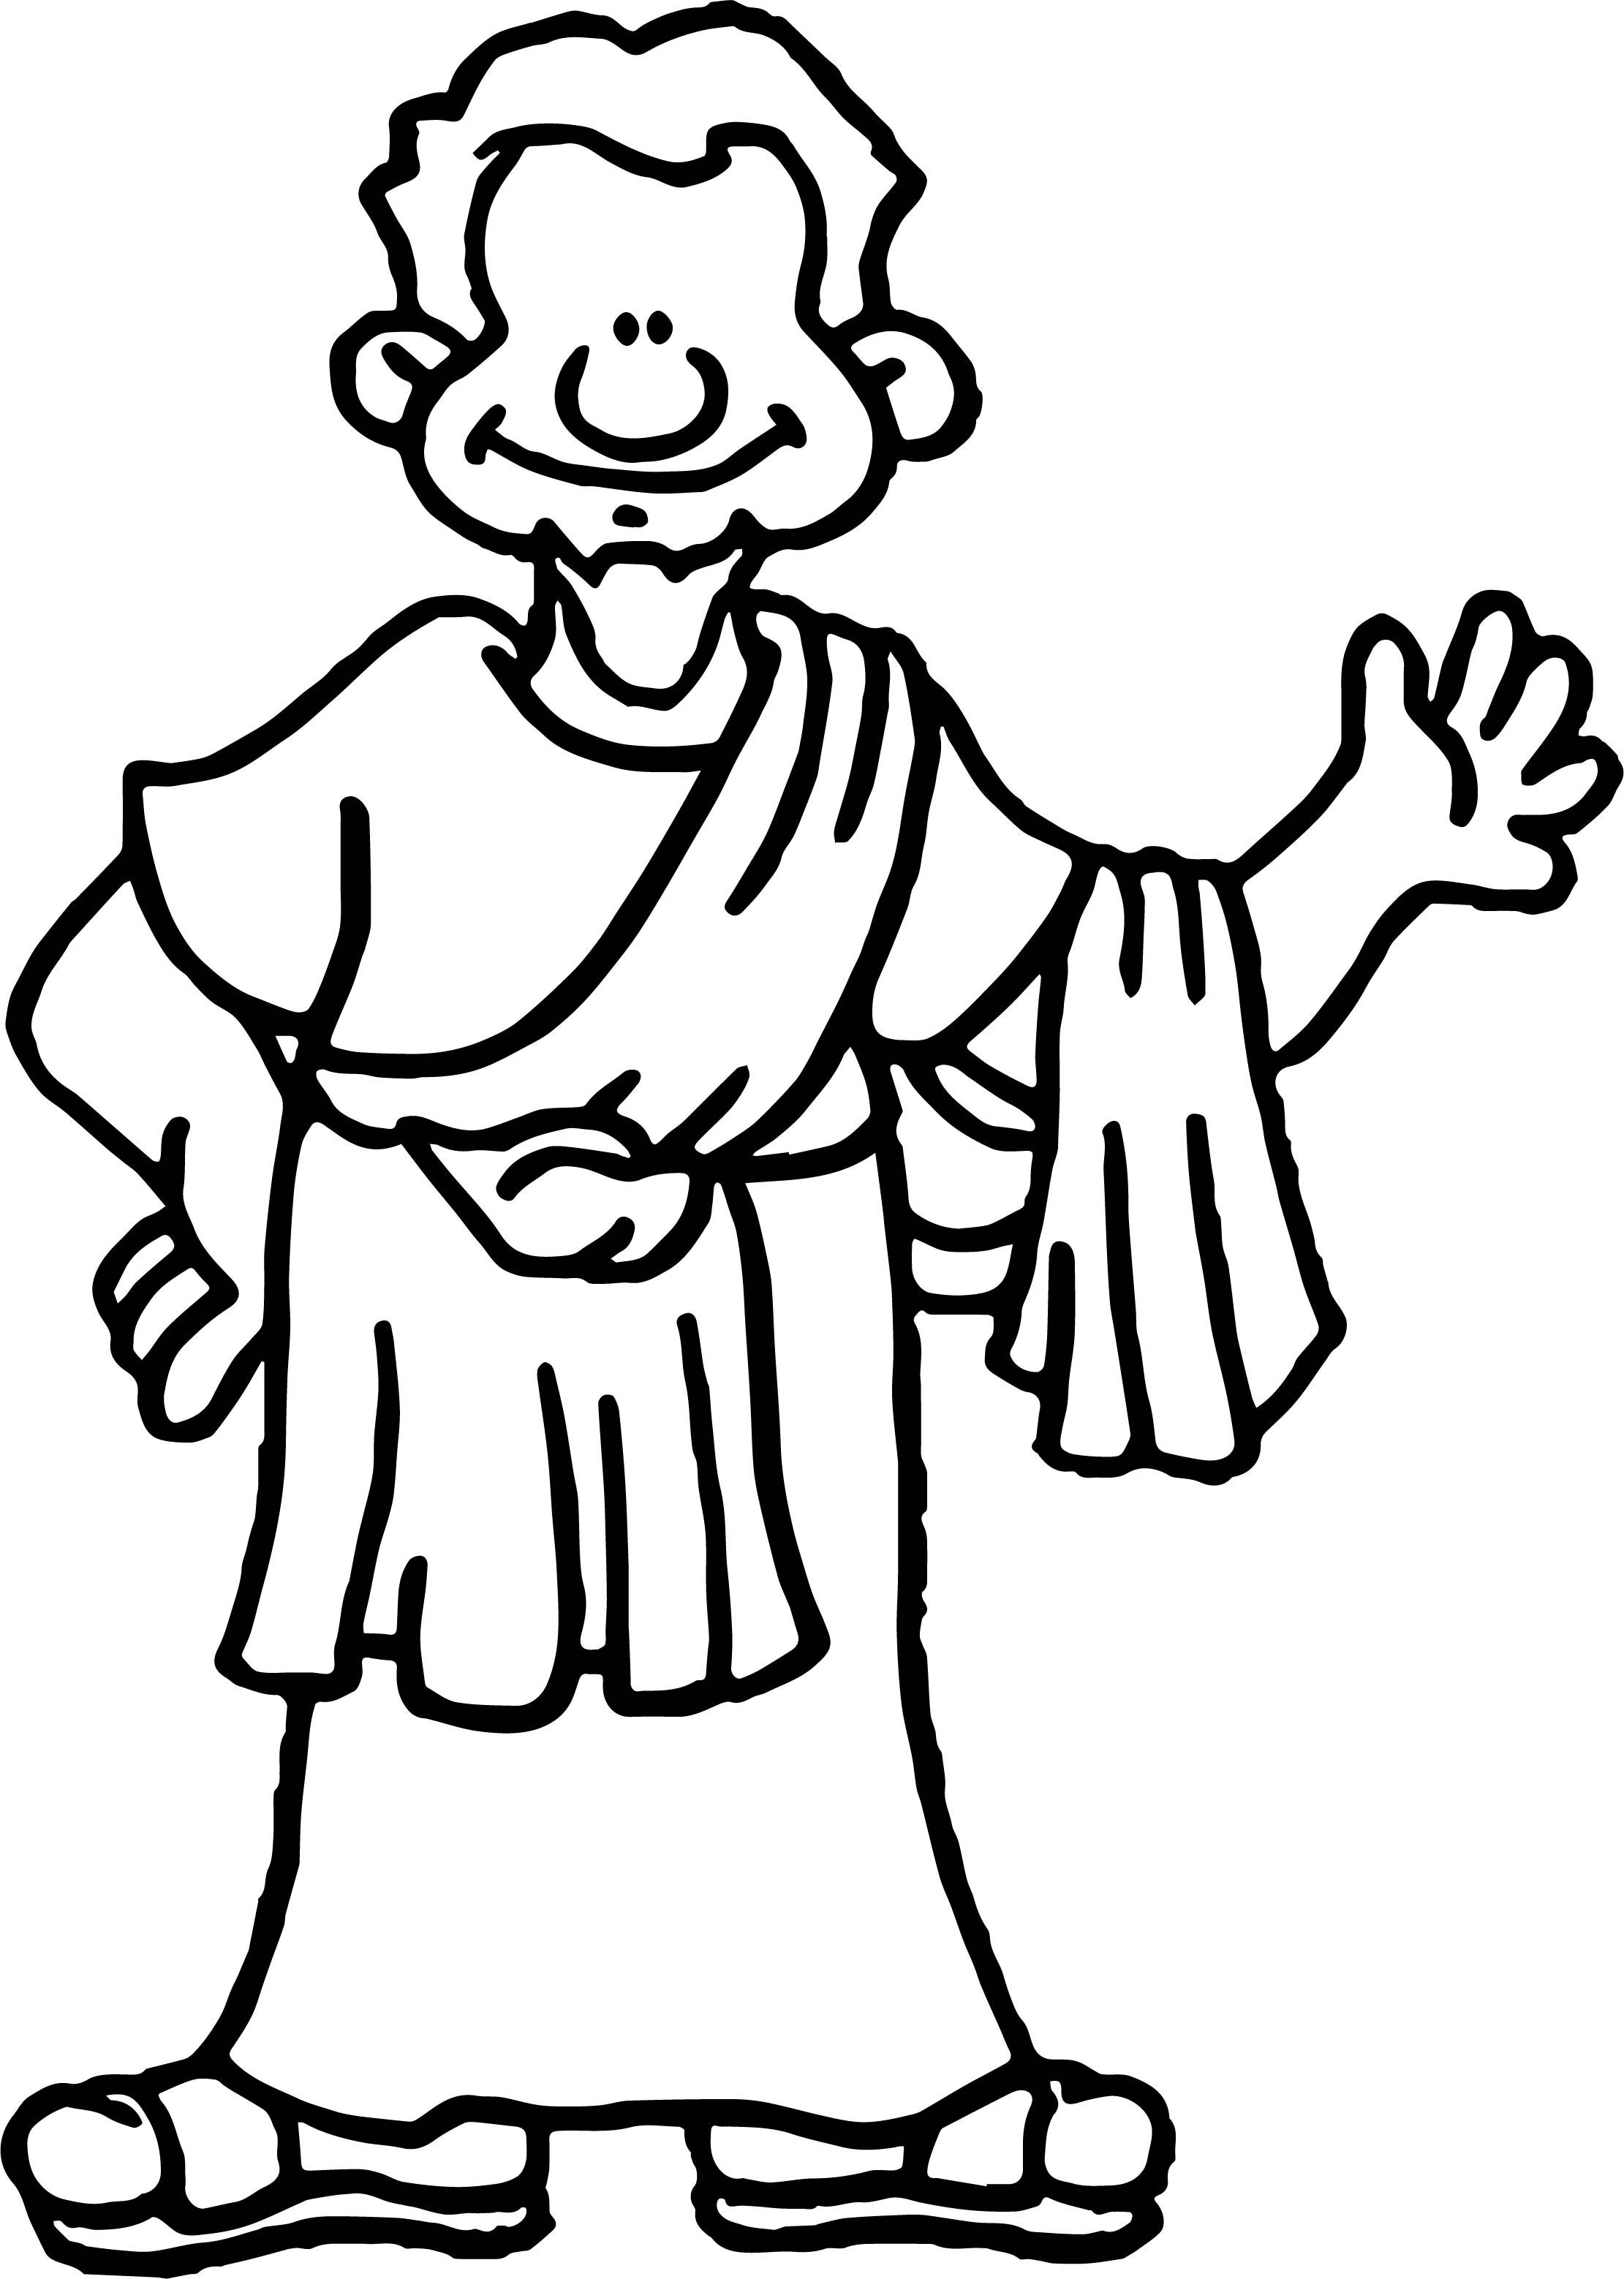 Apostle paul hi coloring page for Apostle paul coloring page